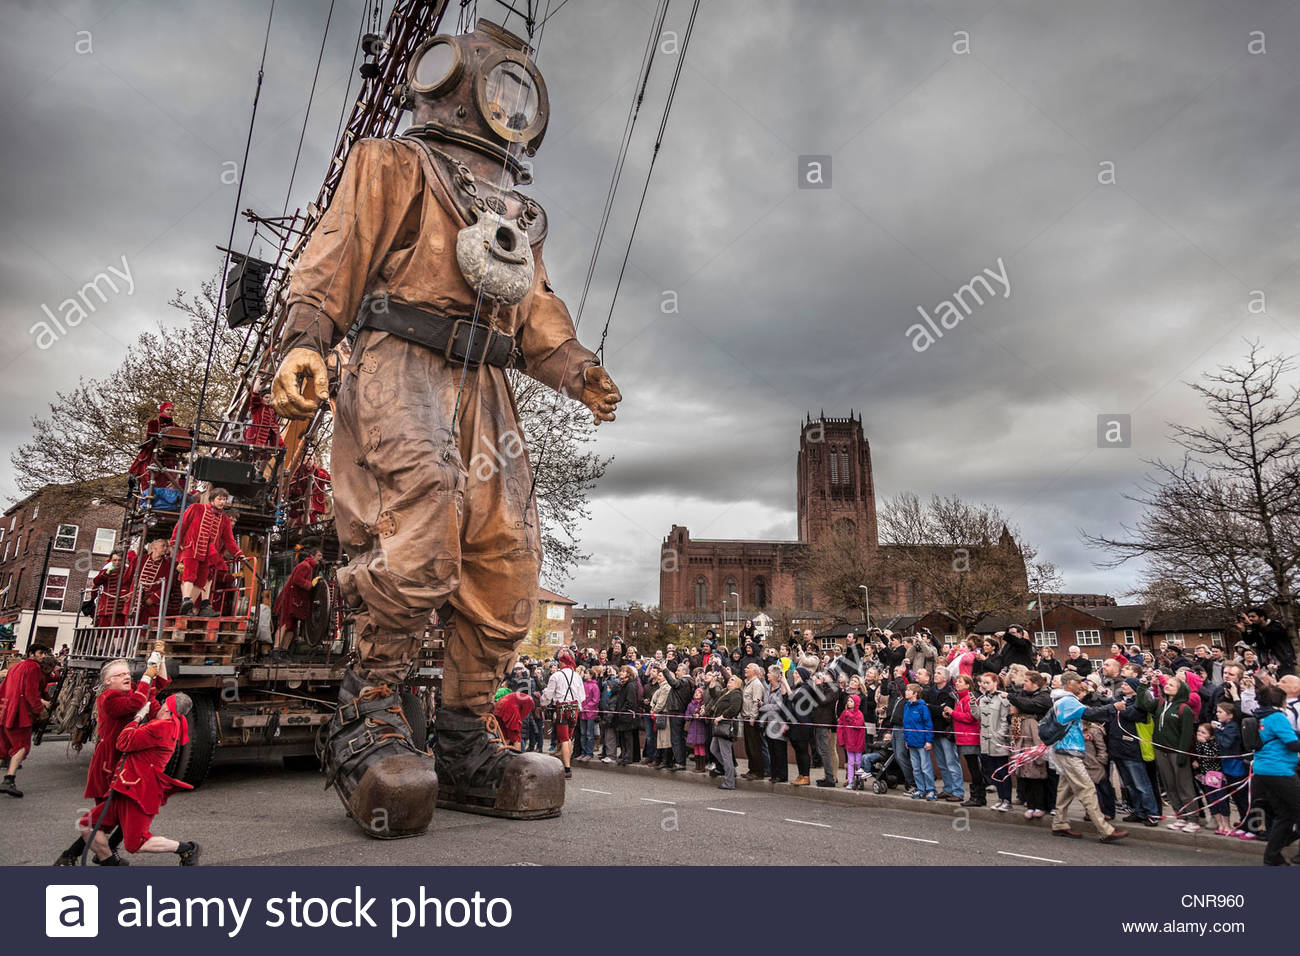 Street theatre company Royal De Luxe Giants marionette show called Sea Odyssey seen in front of the Anglican cathedral - Stock Image